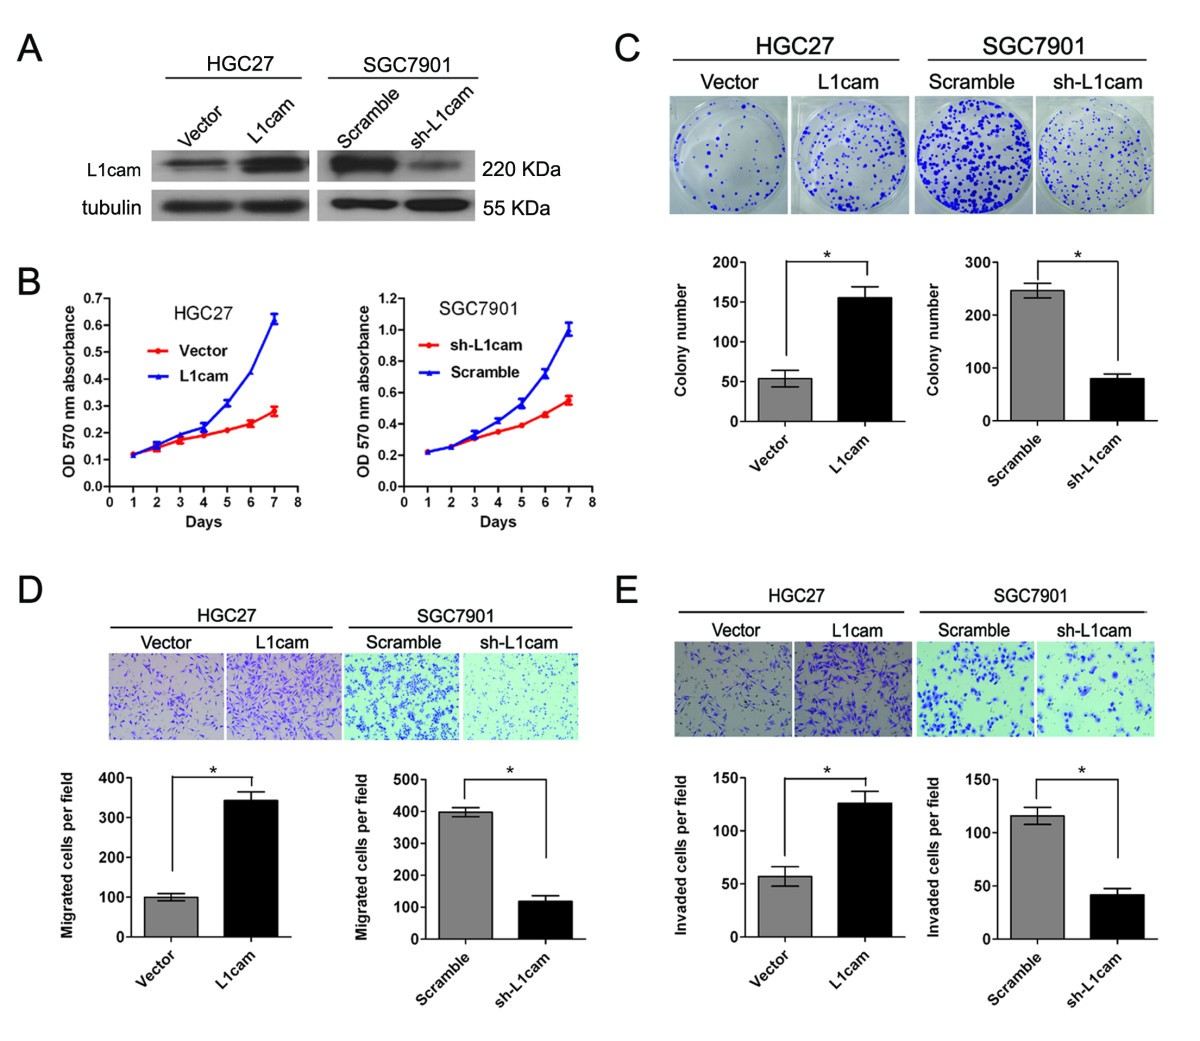 L1cam Promotes Tumor Progression And Metastasis Is An Electronic Scoreboard With The Above Ic 4033 Counter Circuit Figure 3